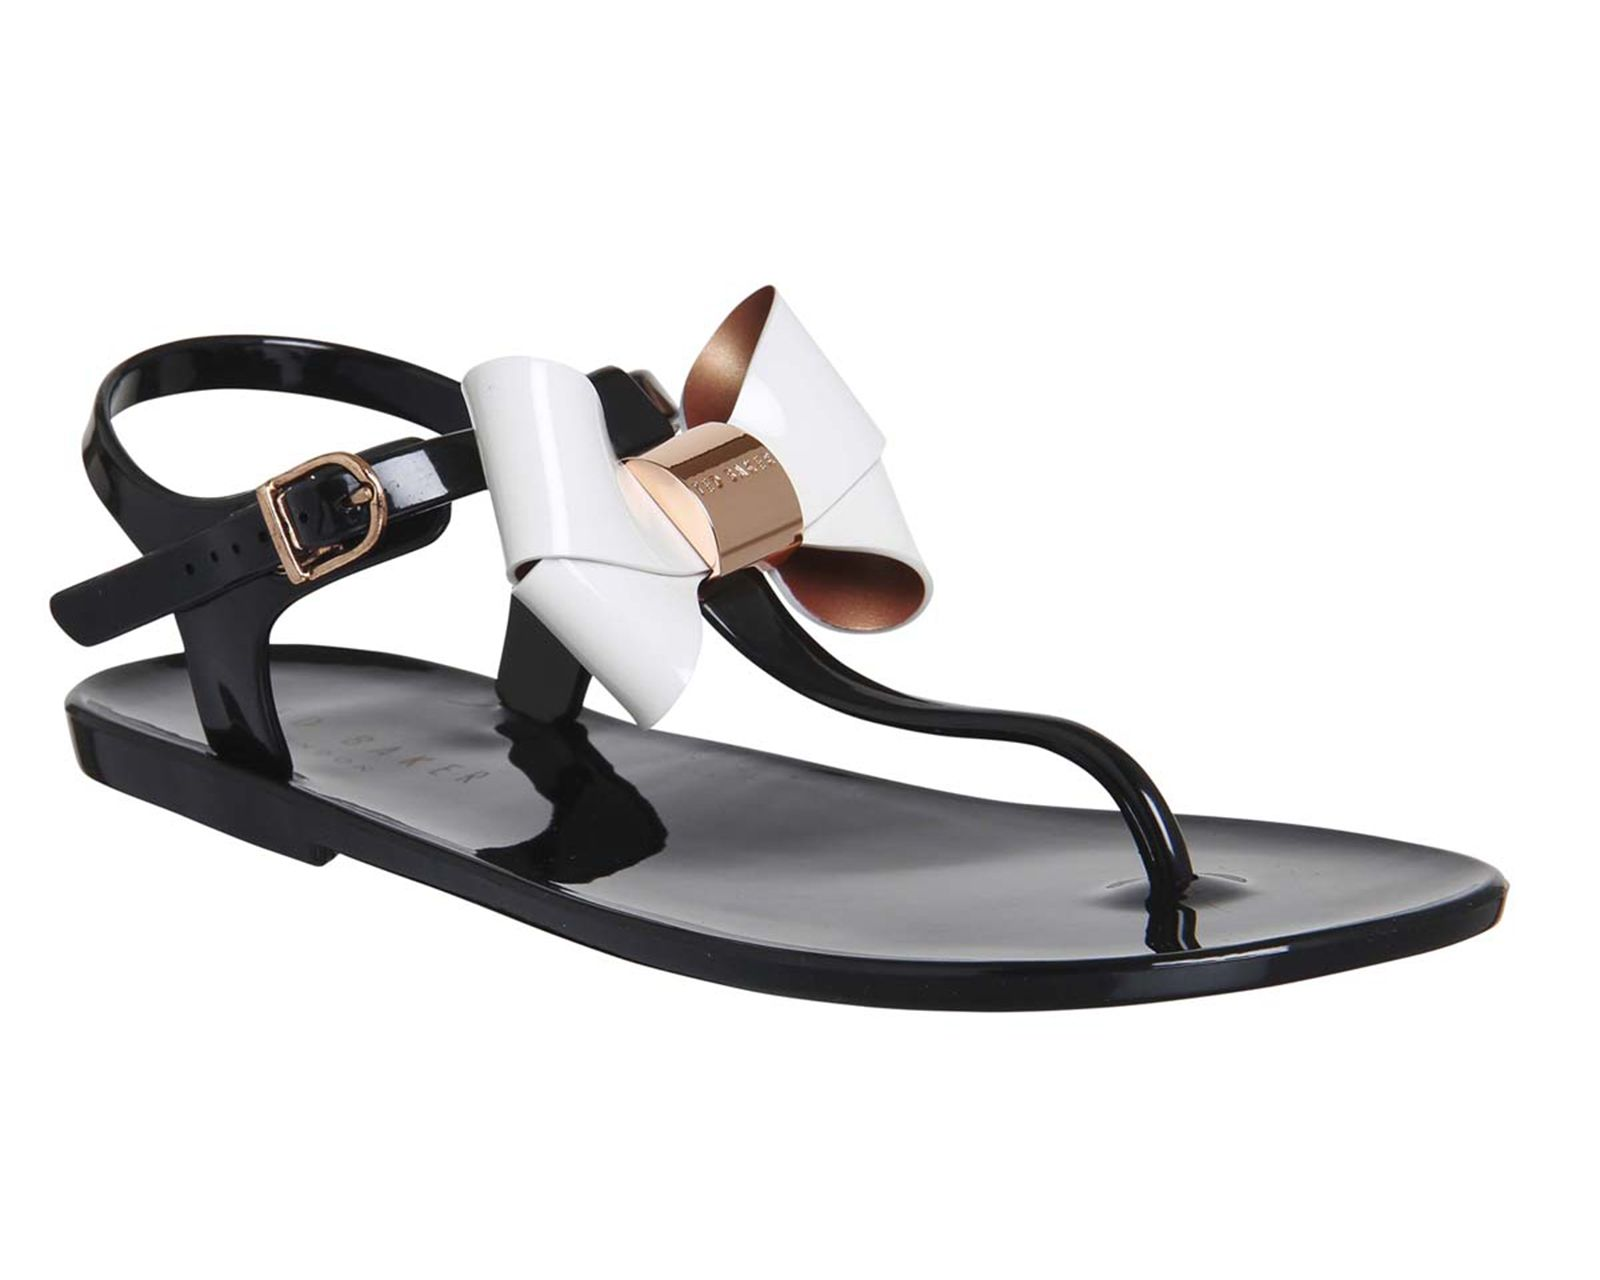 337cbe60e8767d Buy Black Cream Ted Baker Verona Bow Sandal from OFFICE.co.uk ...